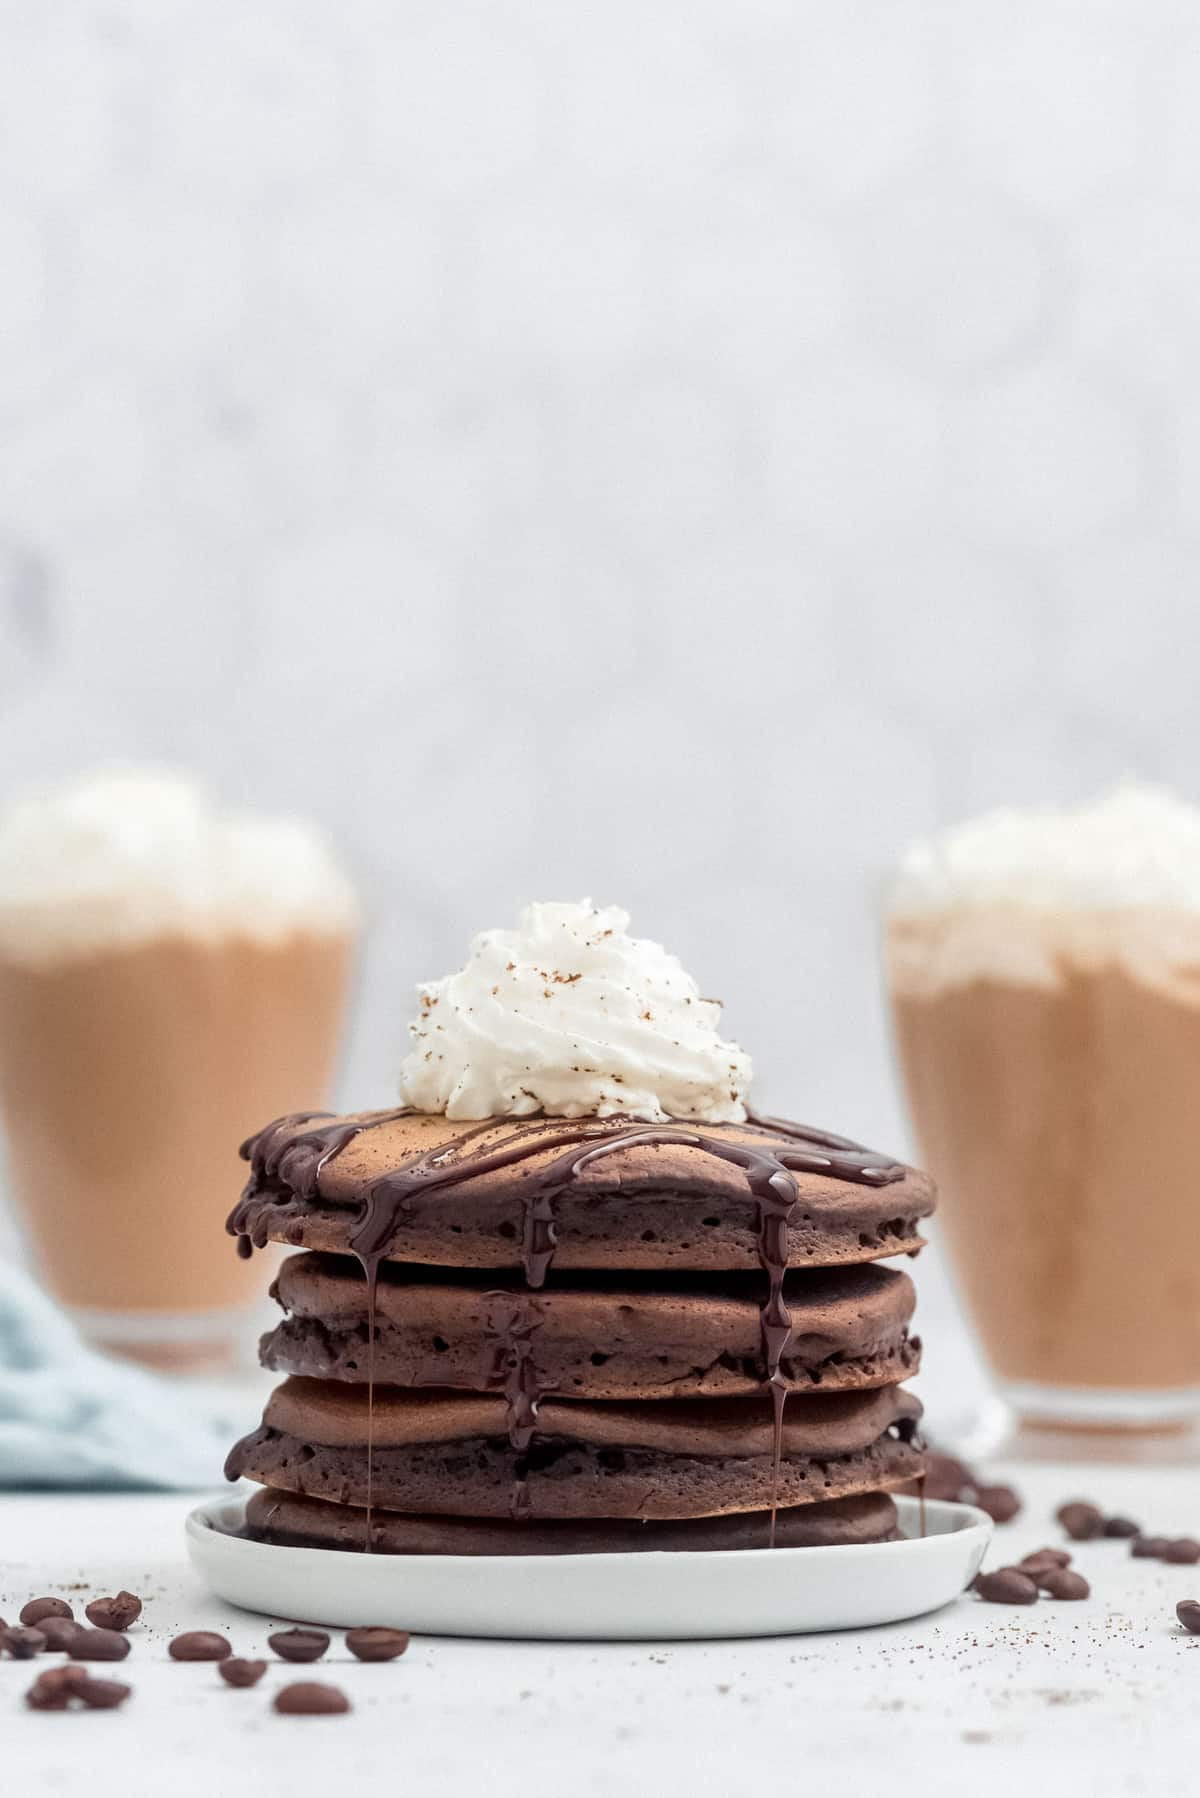 Stack of mocha pancakes with whipped cream, mochas in the background.